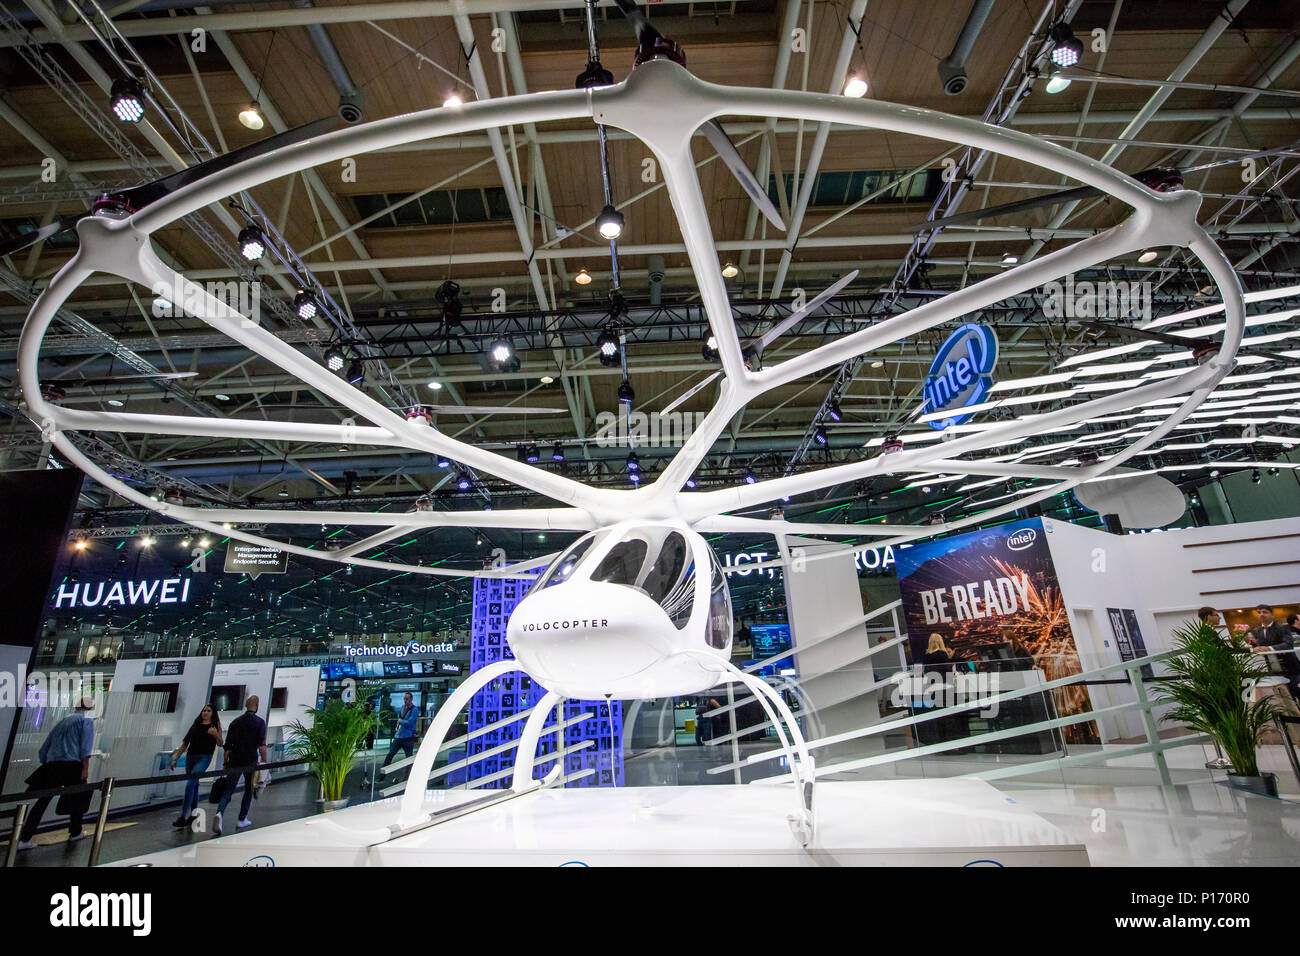 Hannover, Germany. 11th June, 2018. CEBIT 2018, international computer expo and Europe's Business Festival for Innovation and Digitization: Volocopter 2X, world's first manned fully electric vtol (vertical take-off and landing) aircraft, multirotor electric helicopter build by Volocopter GmbH, Germany. Credit: Christian Lademann - Stock Image